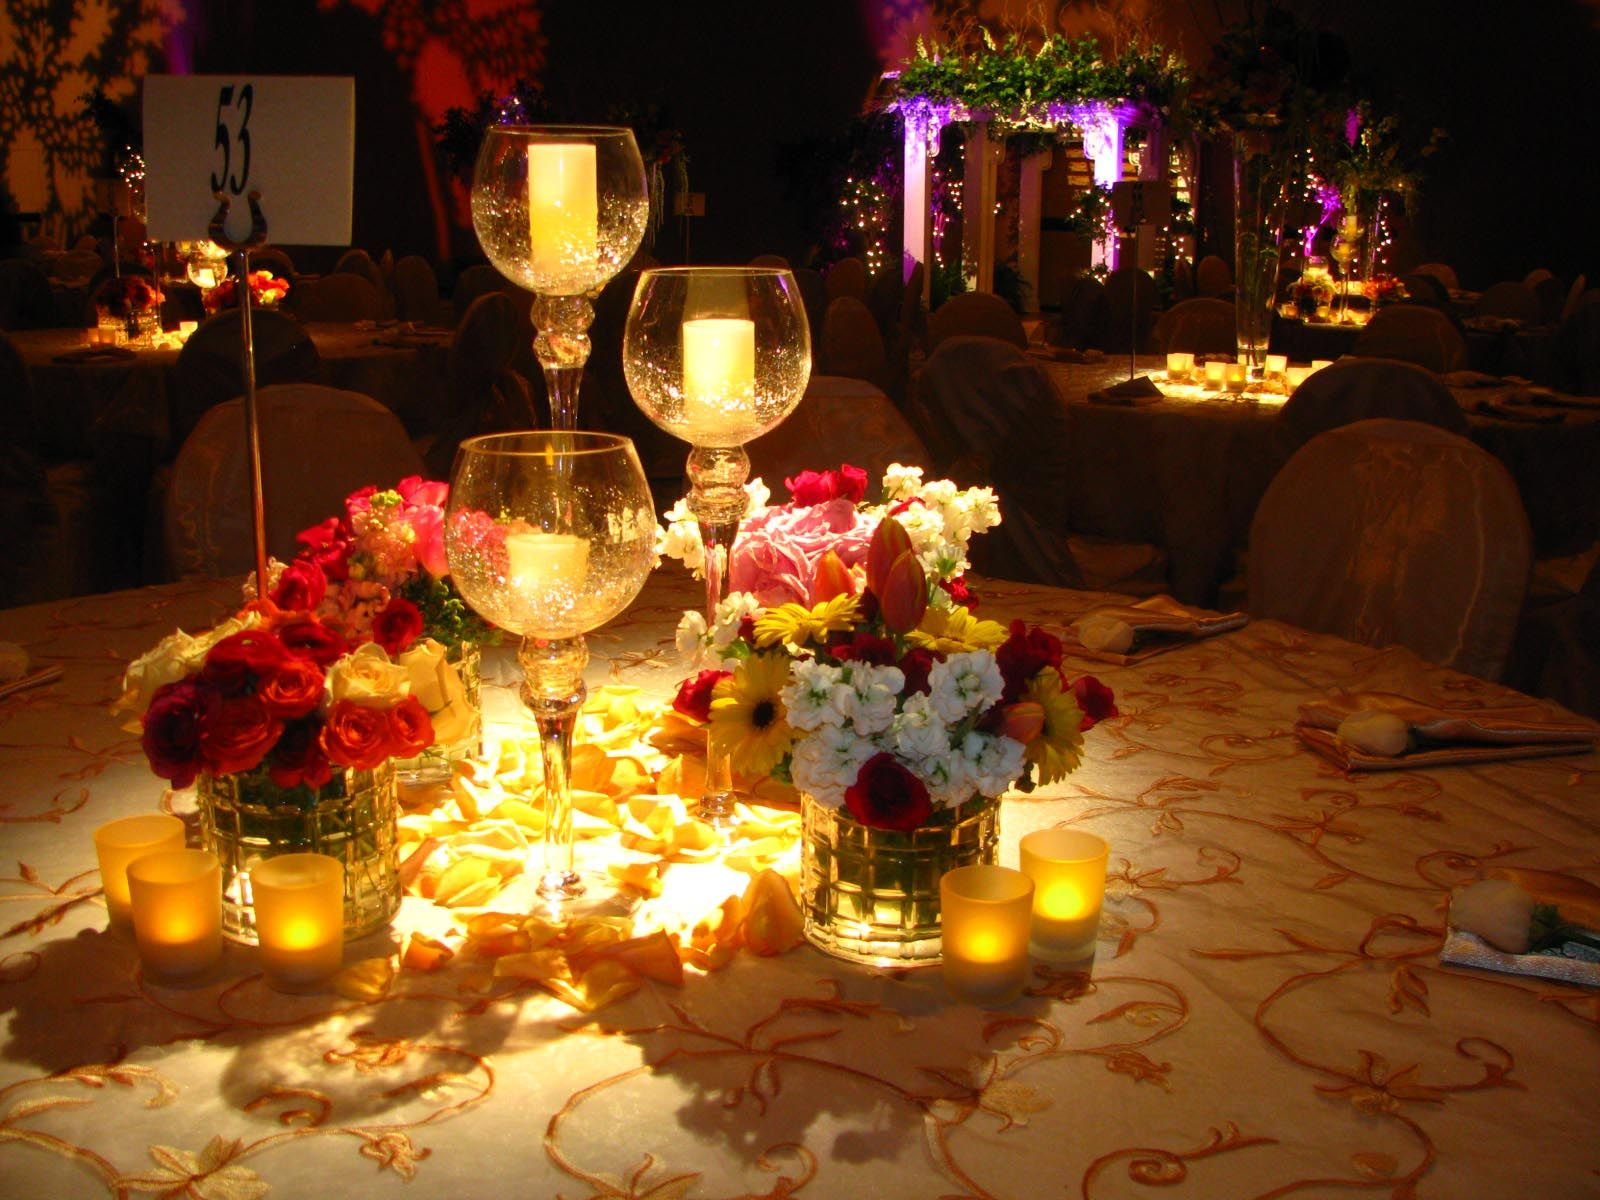 Romantic candlelight dinner romantic candle light dinner for Romantic dinner